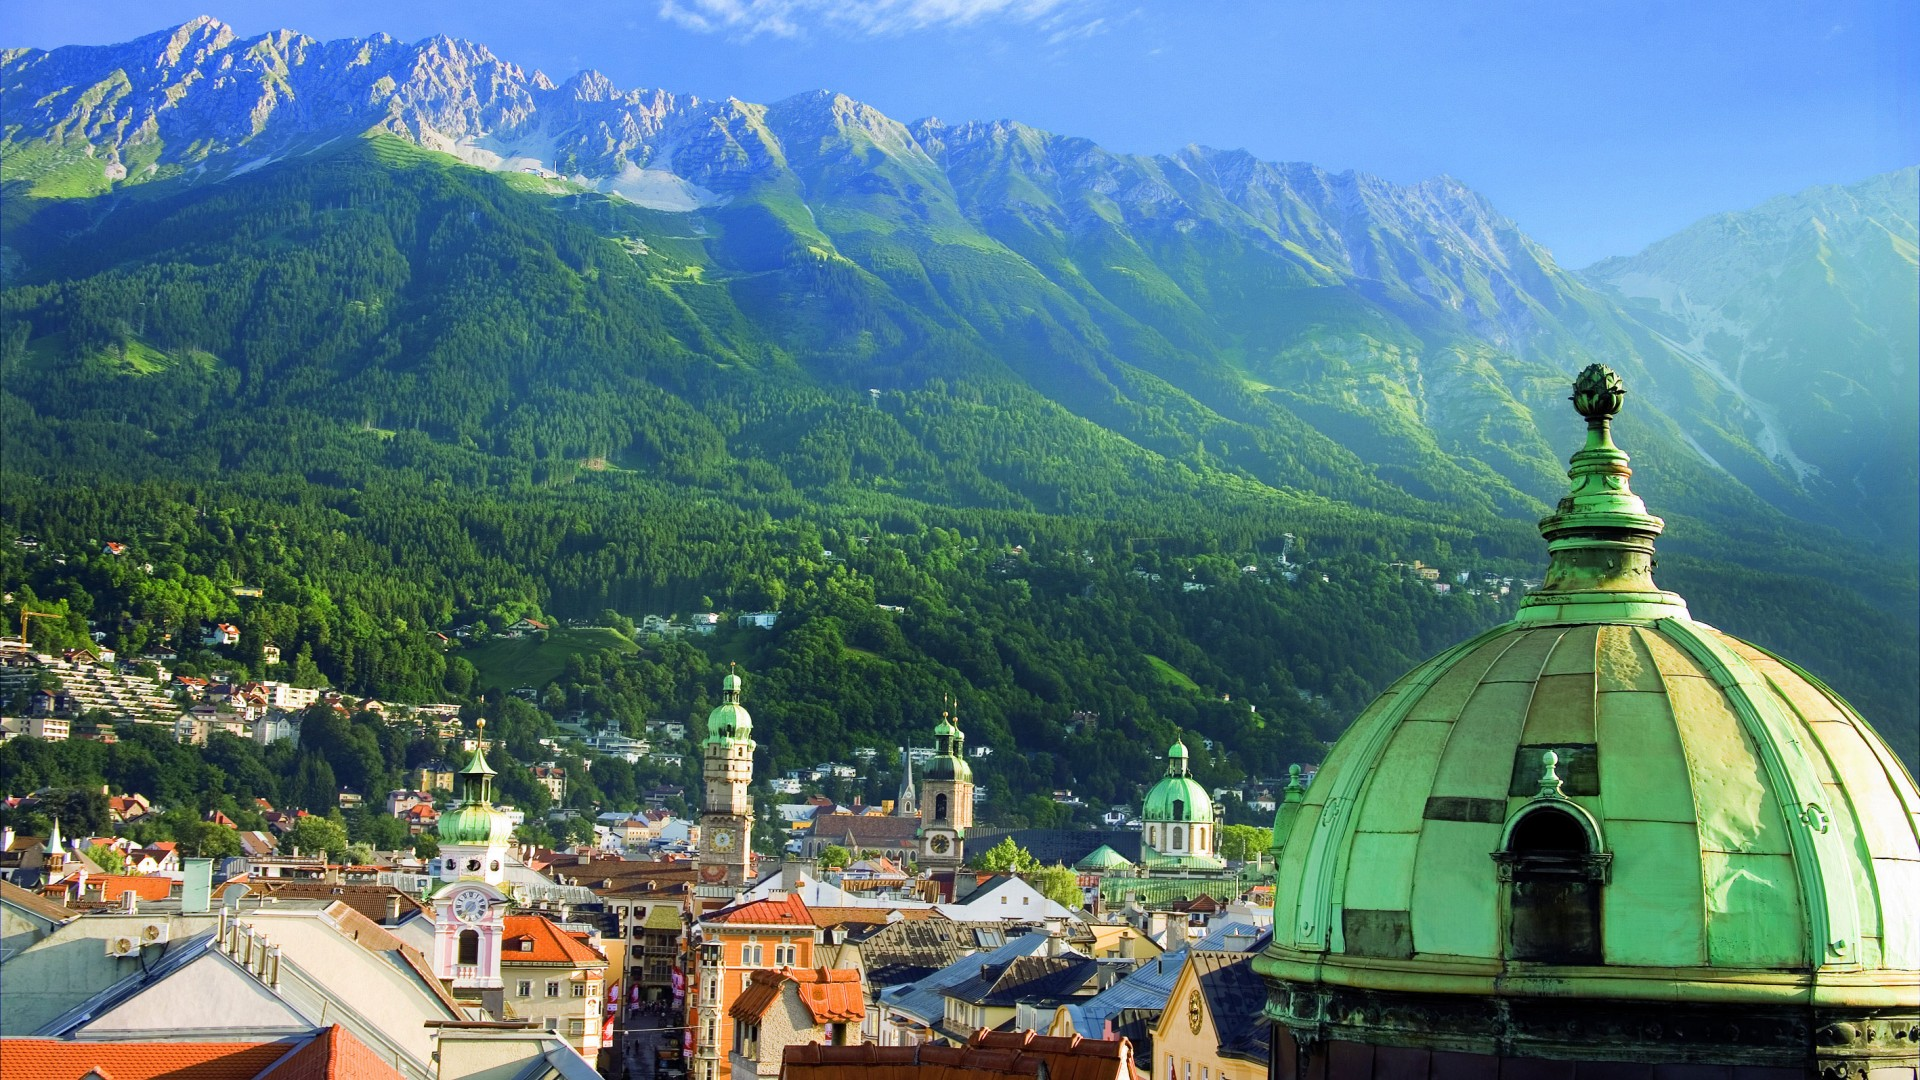 Views over Innsbruck